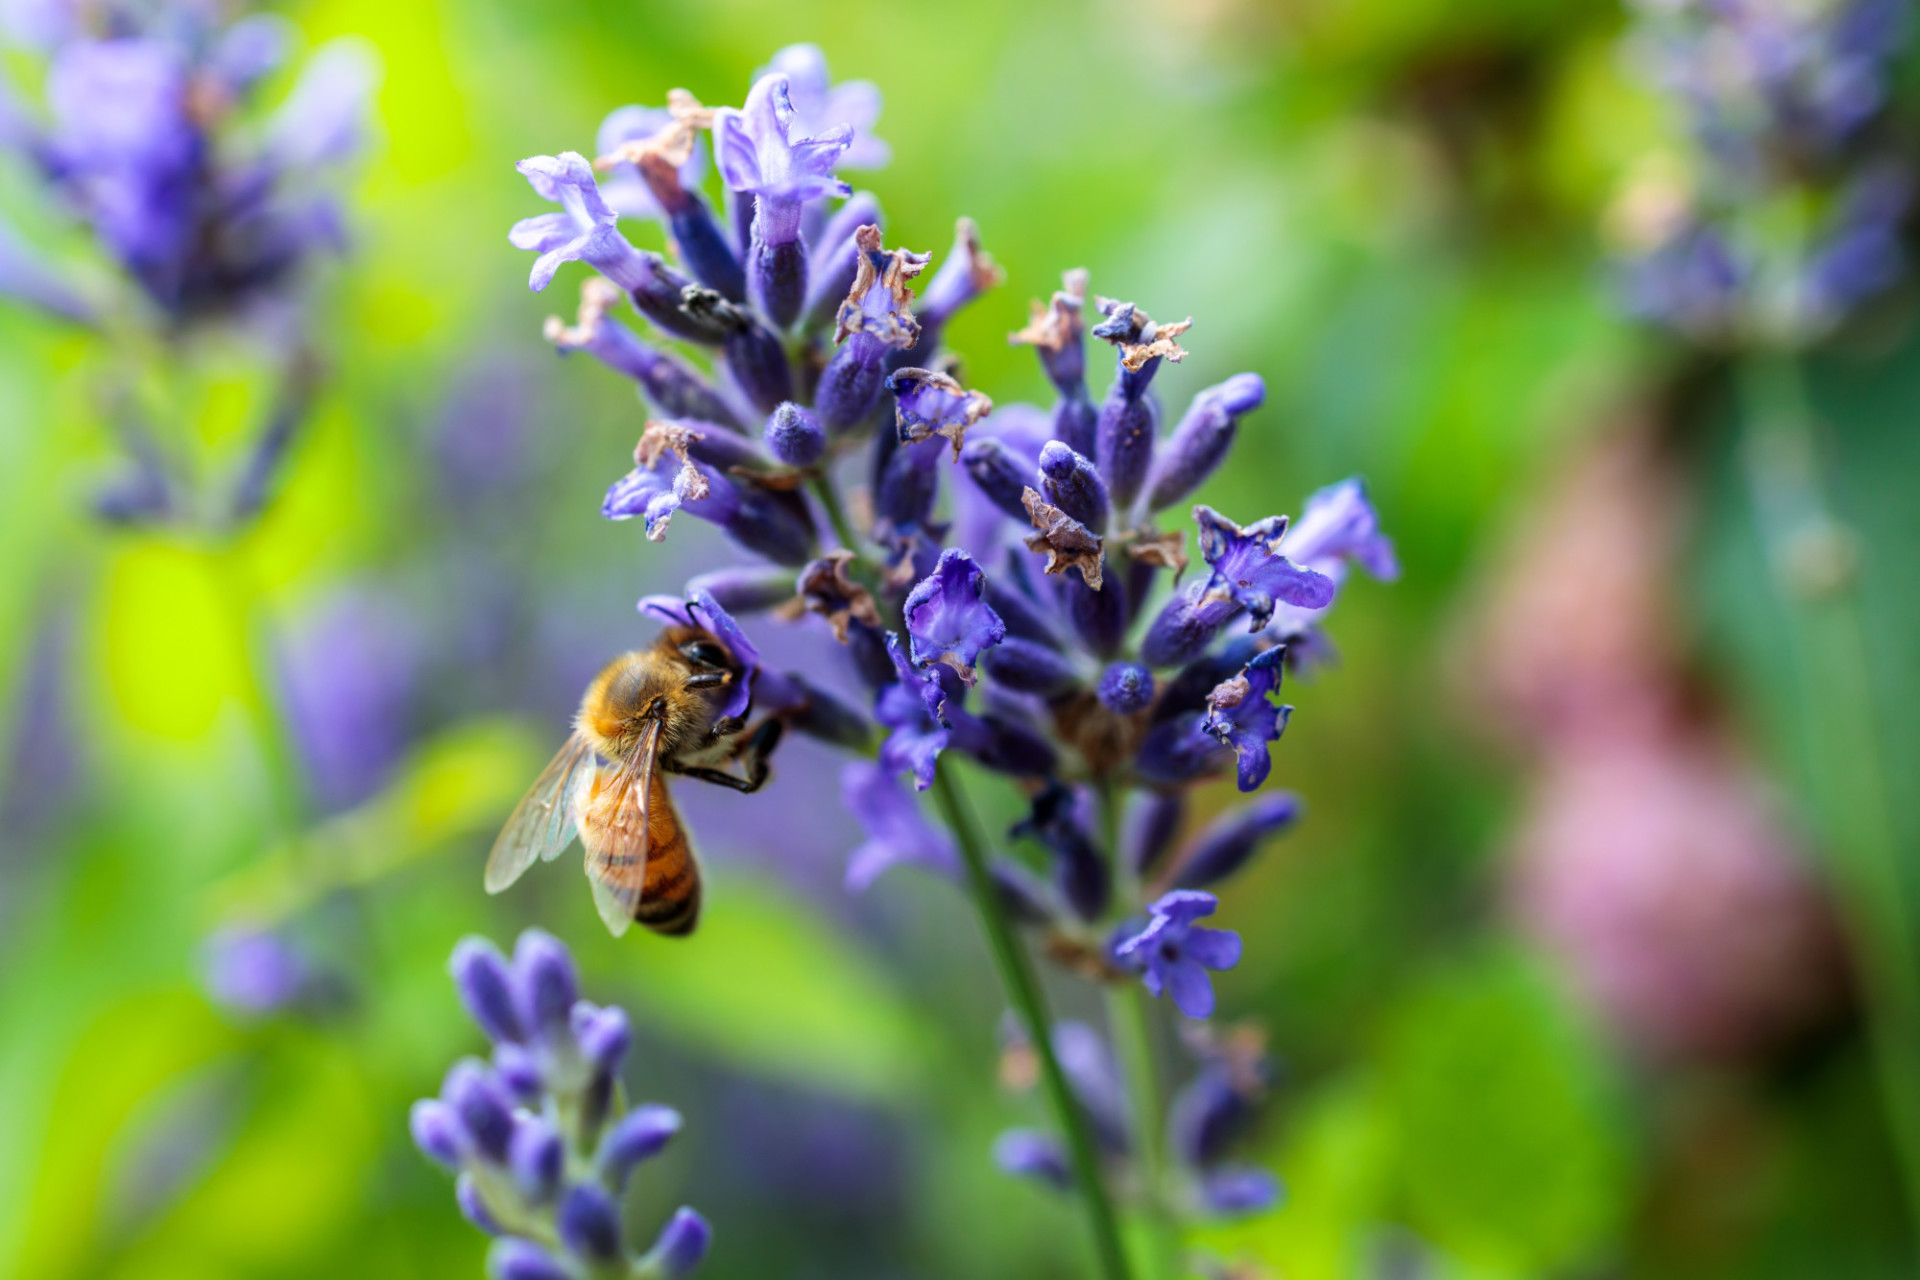 Bee collecting nectar from lavender flower